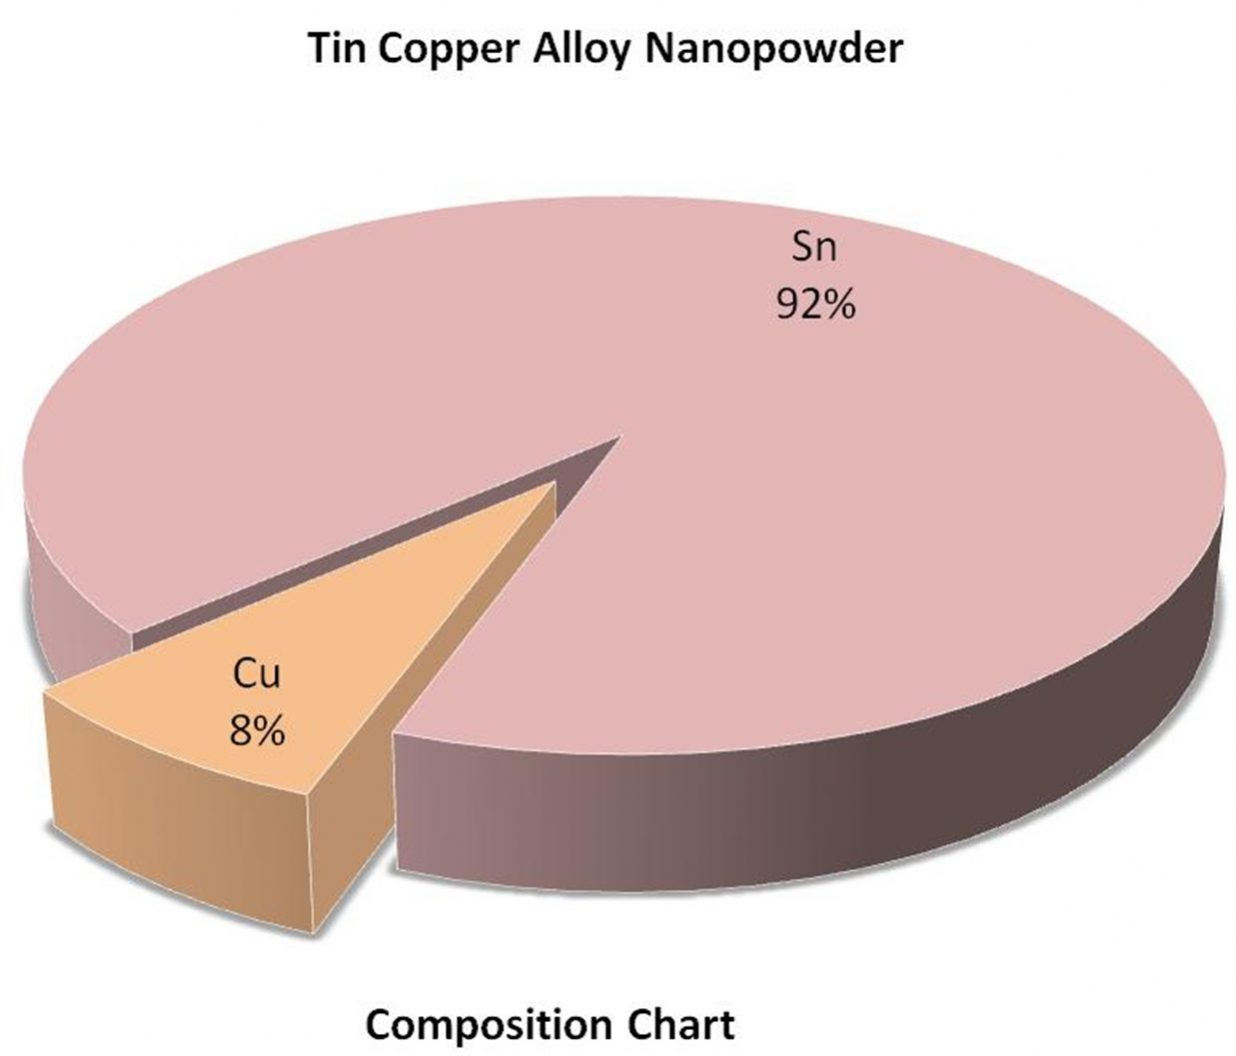 Composition Chart - Sn:Cu Alloy Nanoparticles